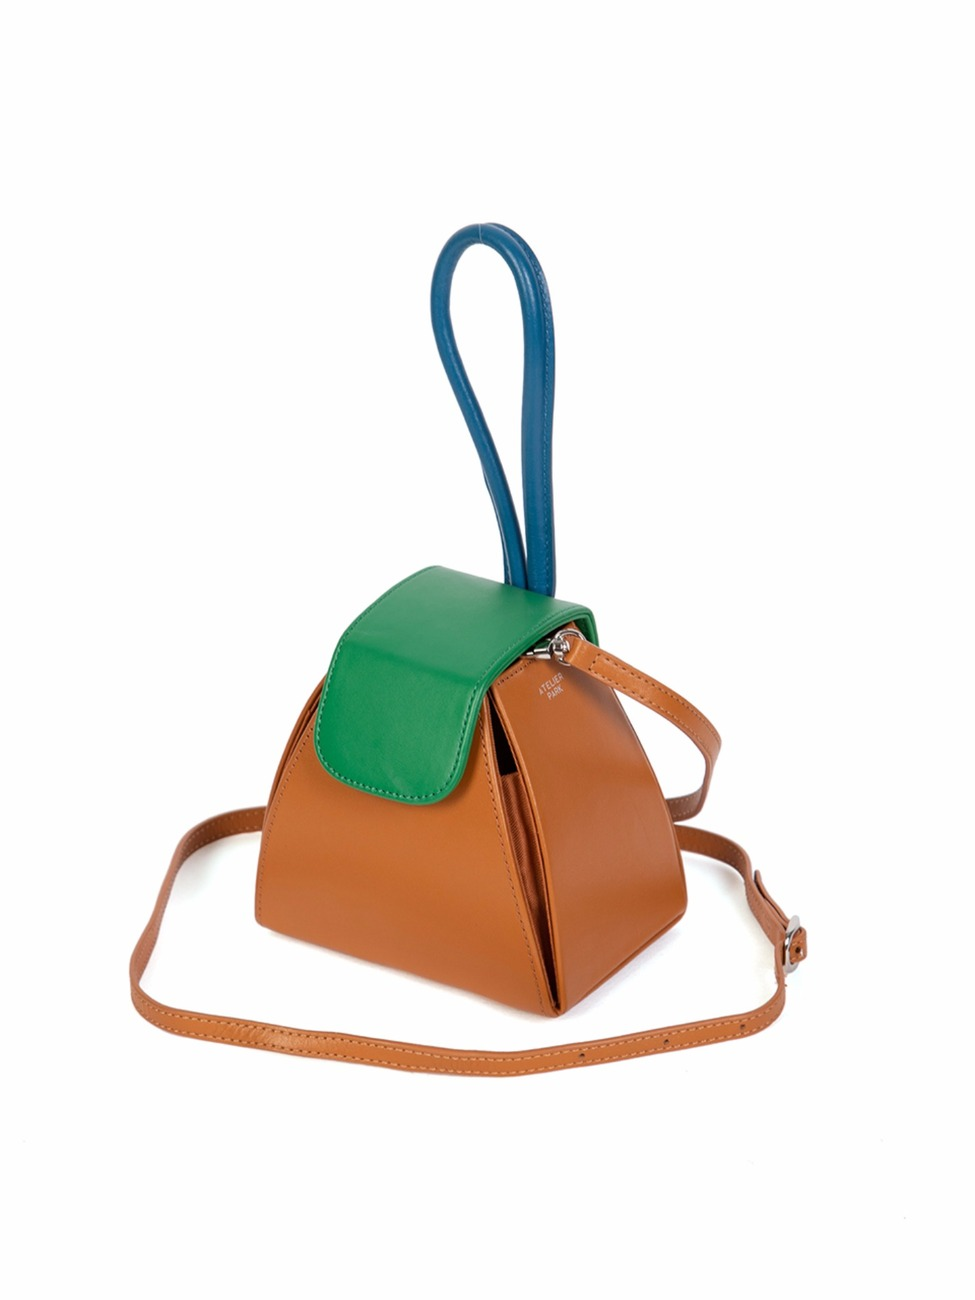 COLOR BLOCK HANDLE BAG - CAMEL (레더스트랩 포함)